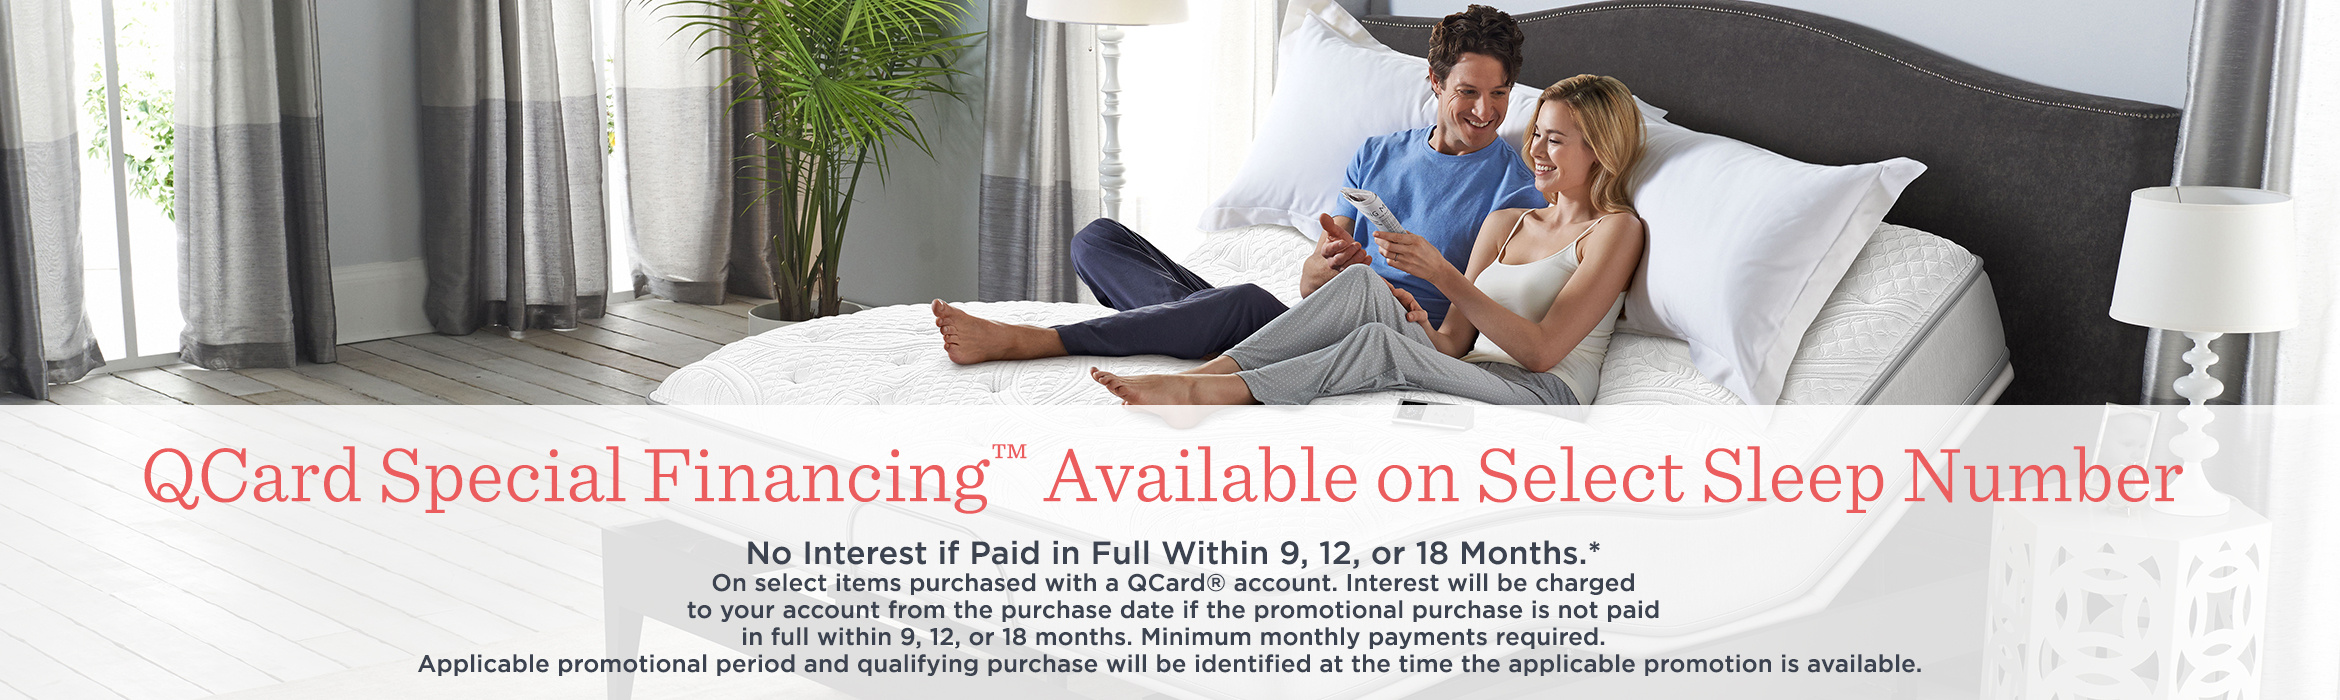 QCard Special Financing™ Available on Select Sleep Number - No Interest if Paid in Full Within 9, 12, or 18 Months.* - On select items purchased with a QCard® account. Interest will be charged to your account from the purchase date if the promotional purchase is not paid in full within 9, 12, or 18 months. Minimum monthly payments required. Applicable promotional period and qualifying purchase will be identified at the time the applicable promotion is available.